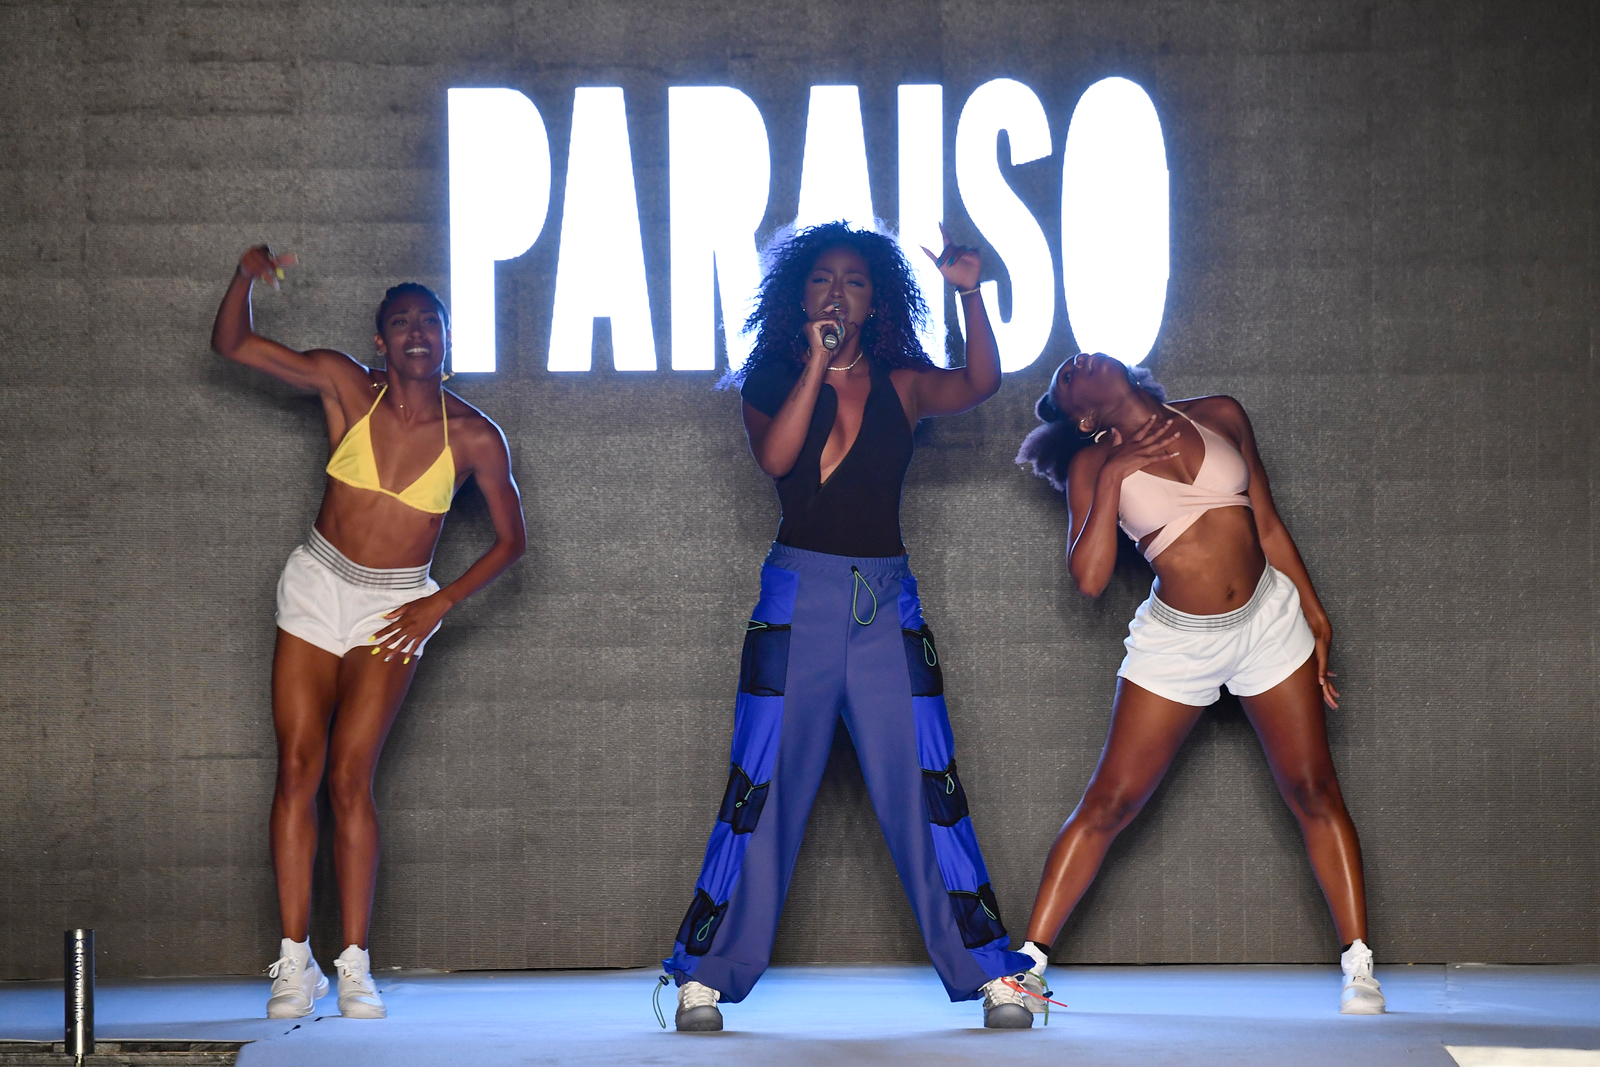 Justine Skye performs on the runway for the 2018 Sports Illustrated Swimsuit show at PARAISO during Miami Swim Week at The W Hotel South Beach on July 15, 2018 in Miami, Florida.